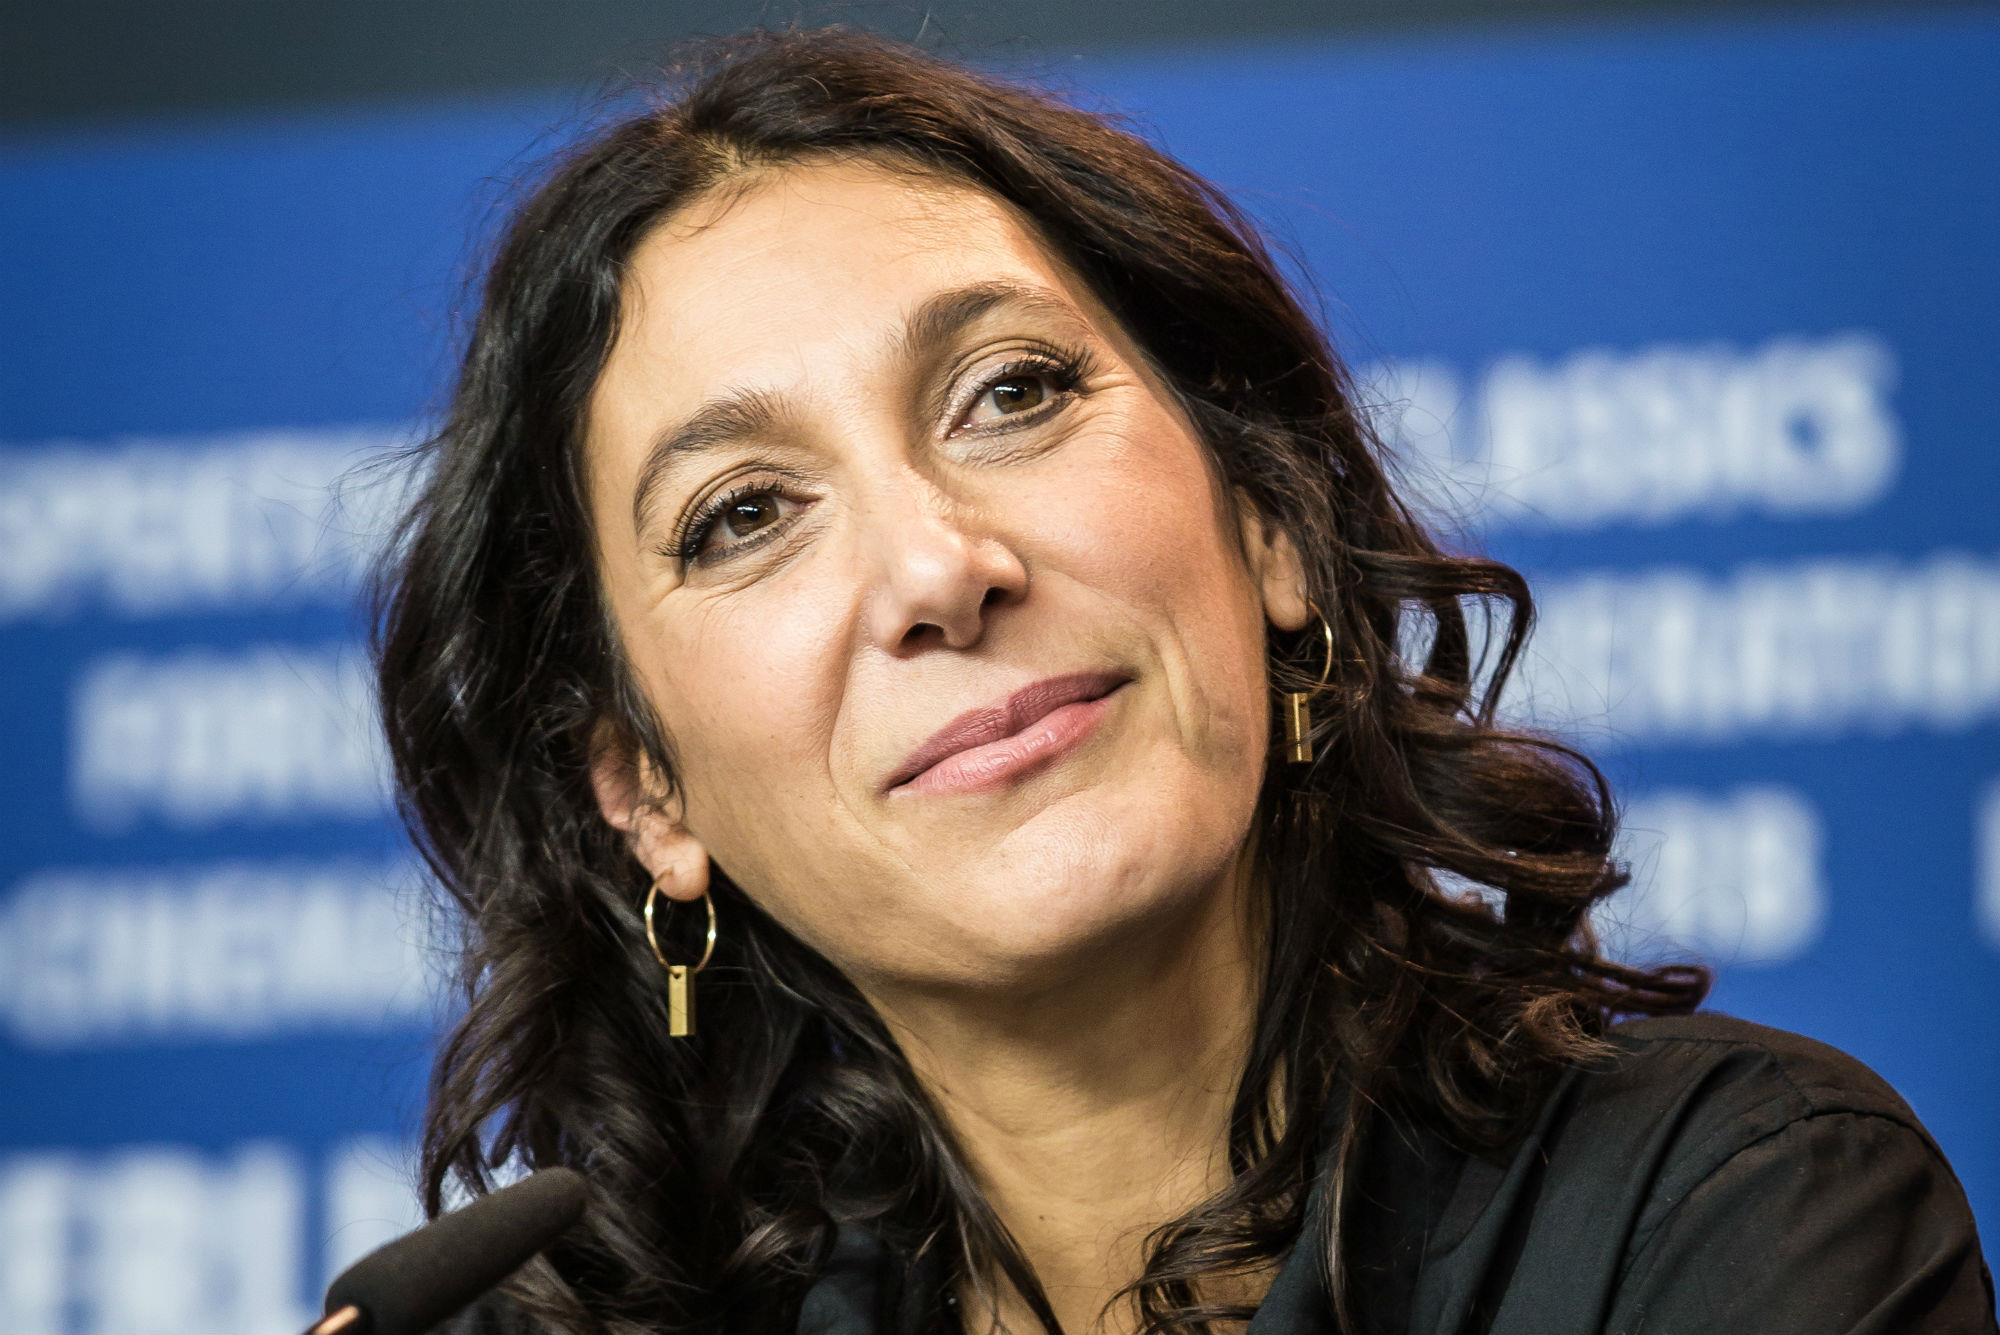 3 Days In Quiberon\' director Emily Atef lines up new project ...